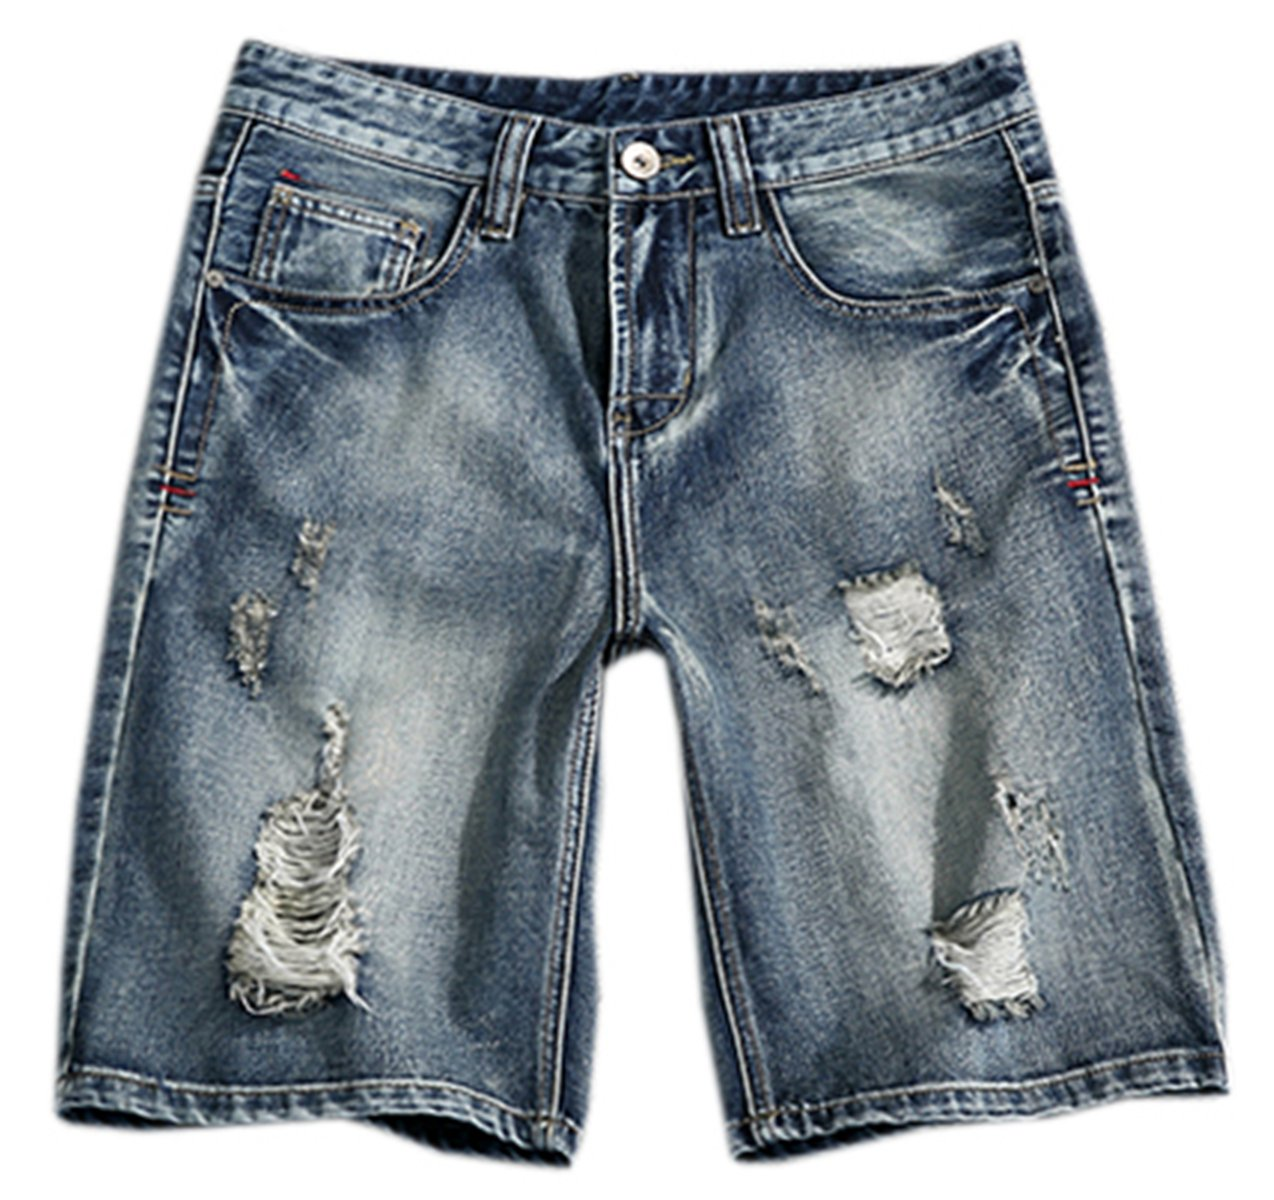 QZH.DUAO Men's Ripped Distressed Slim Straight Fit Washed Denim Jean Shorts with Holes, 2# Blue, Tag Size 3XL = US 40